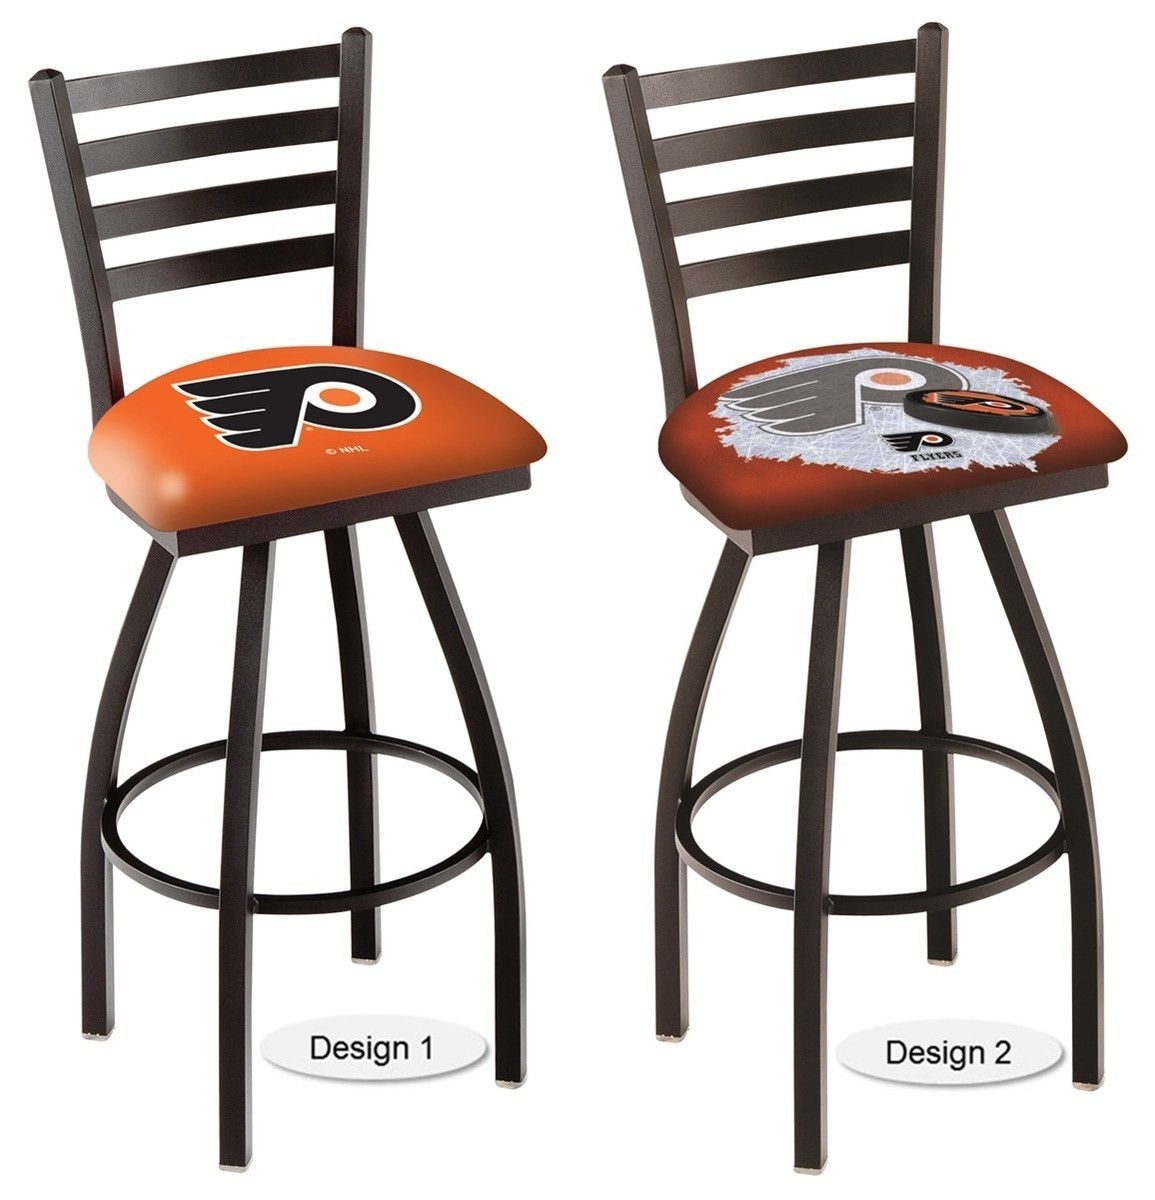 The Officially Licensed Nhl Philadelphia Flyers Bar Stool Carries A Defined Black Ladder Style Back That Adds Comfort And Sophistication